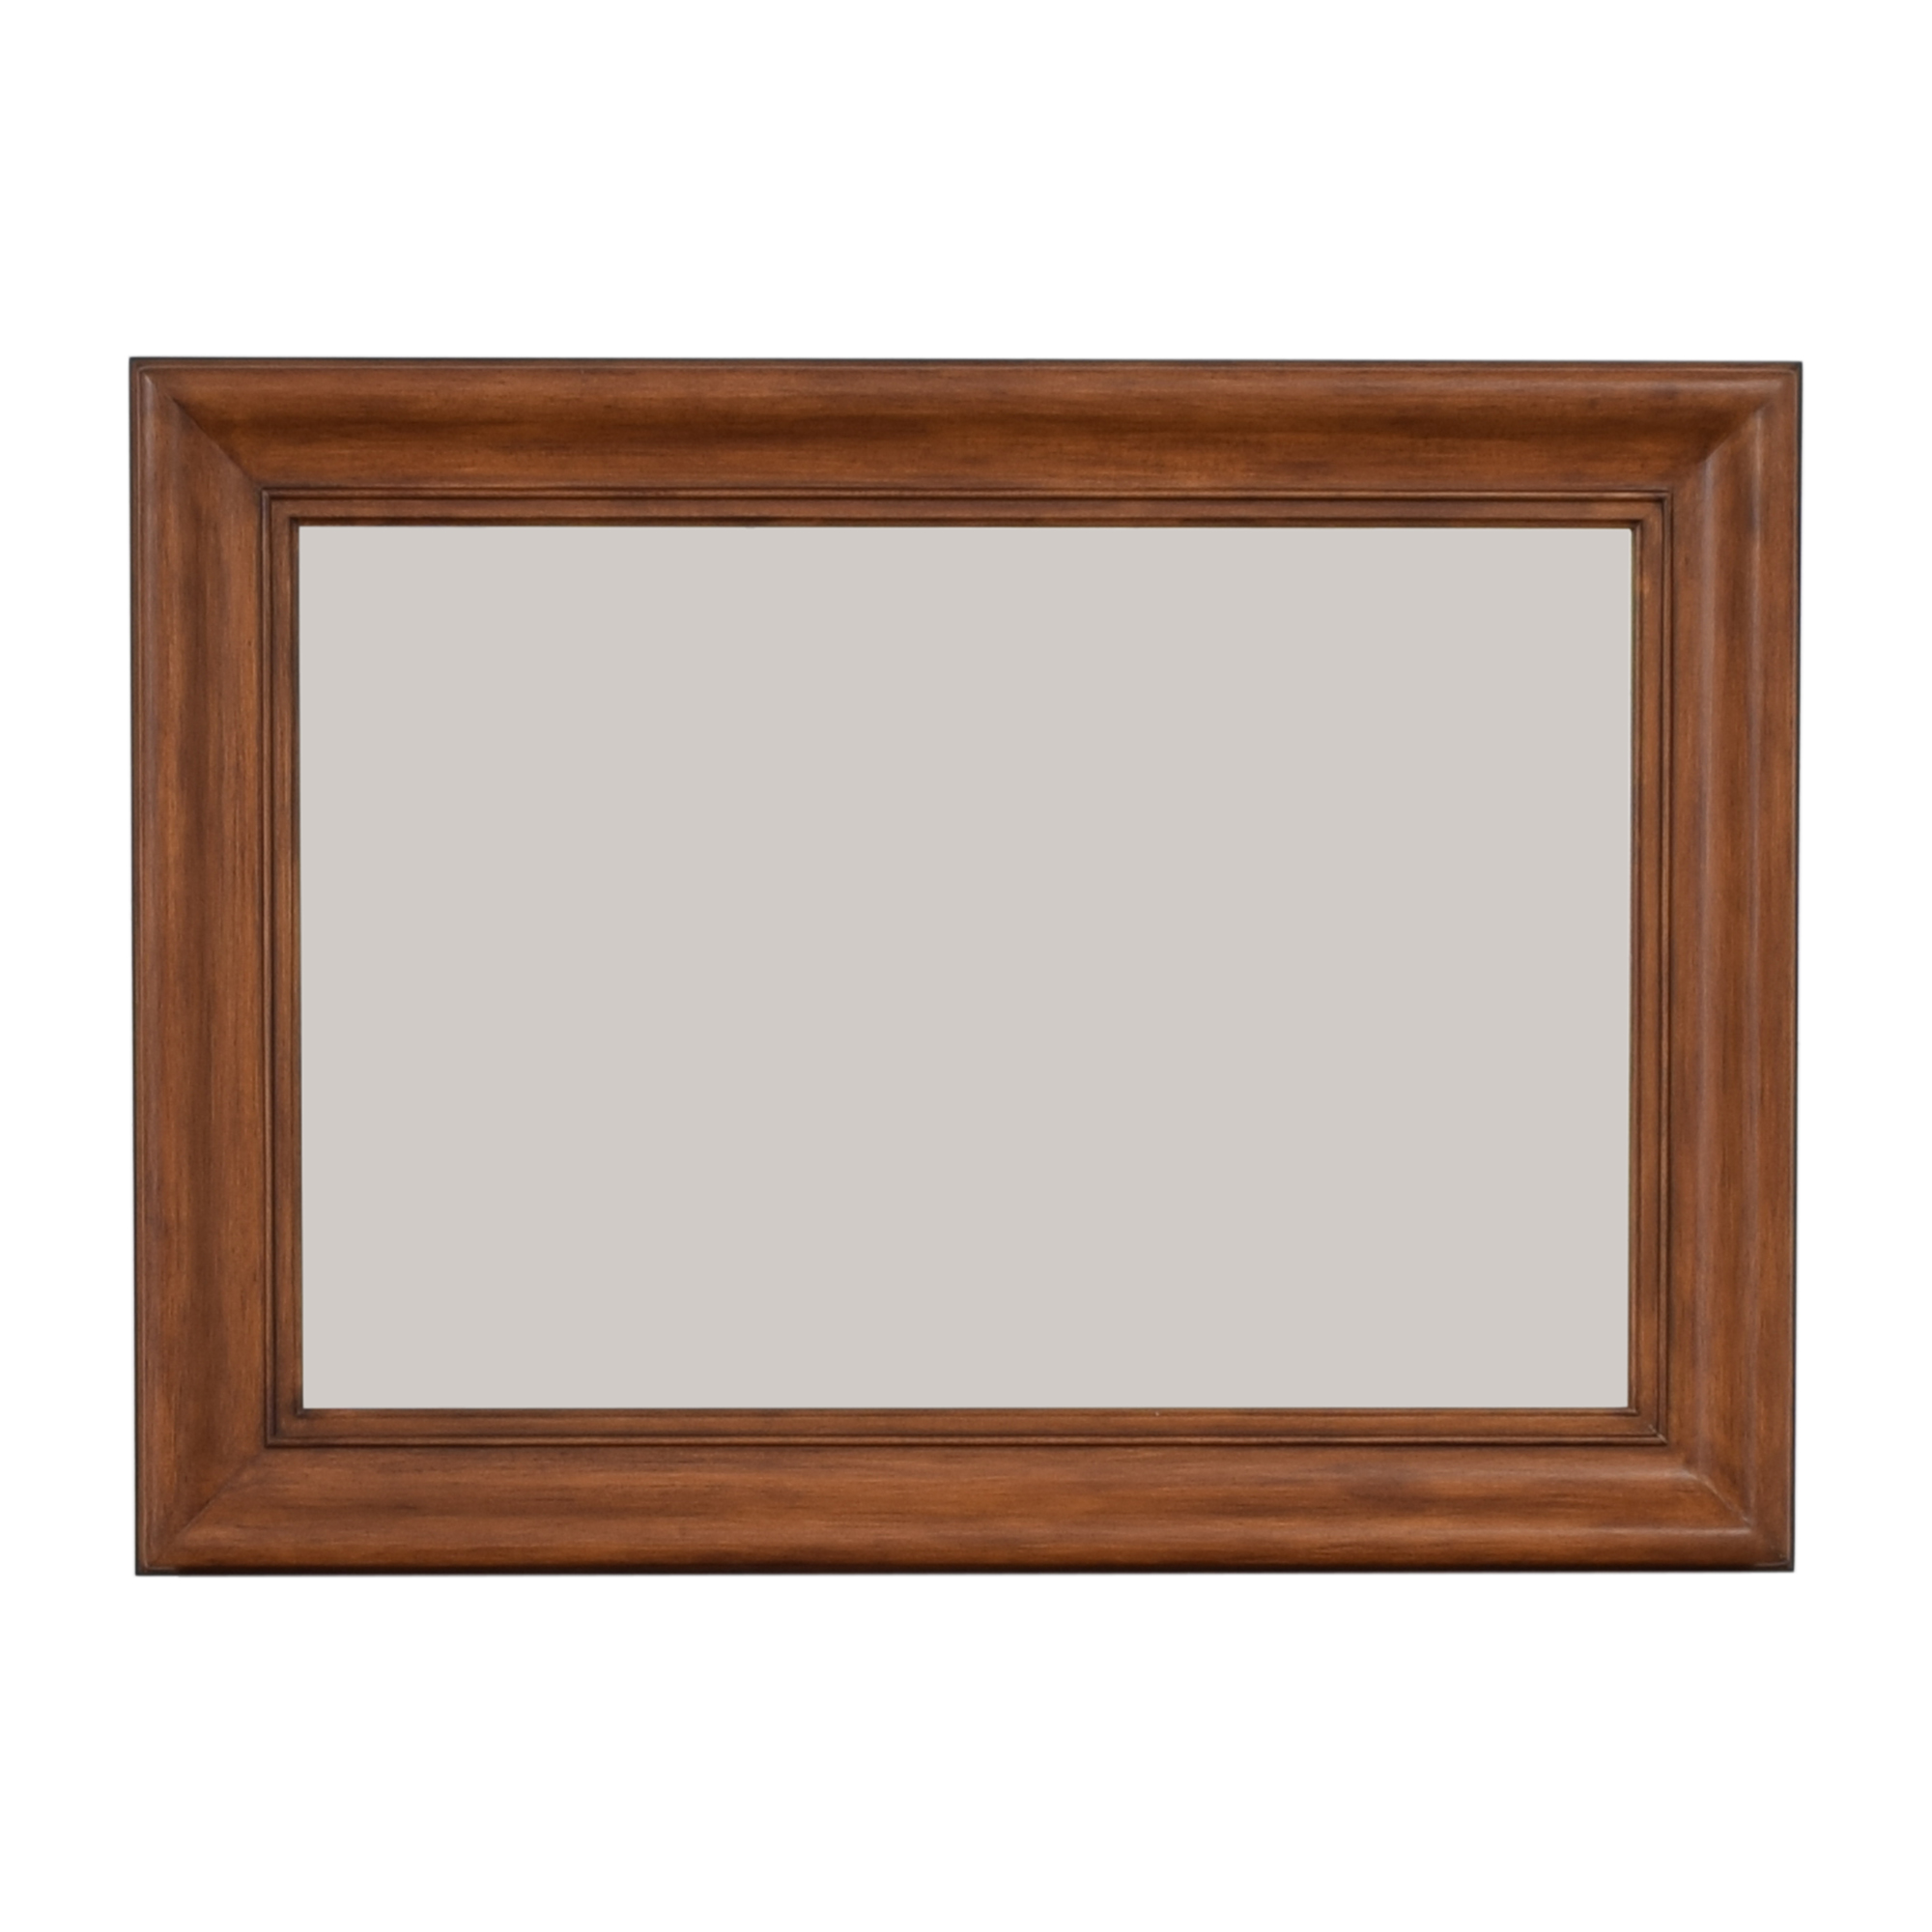 Bassett Mirror Company Wall Mirror sale